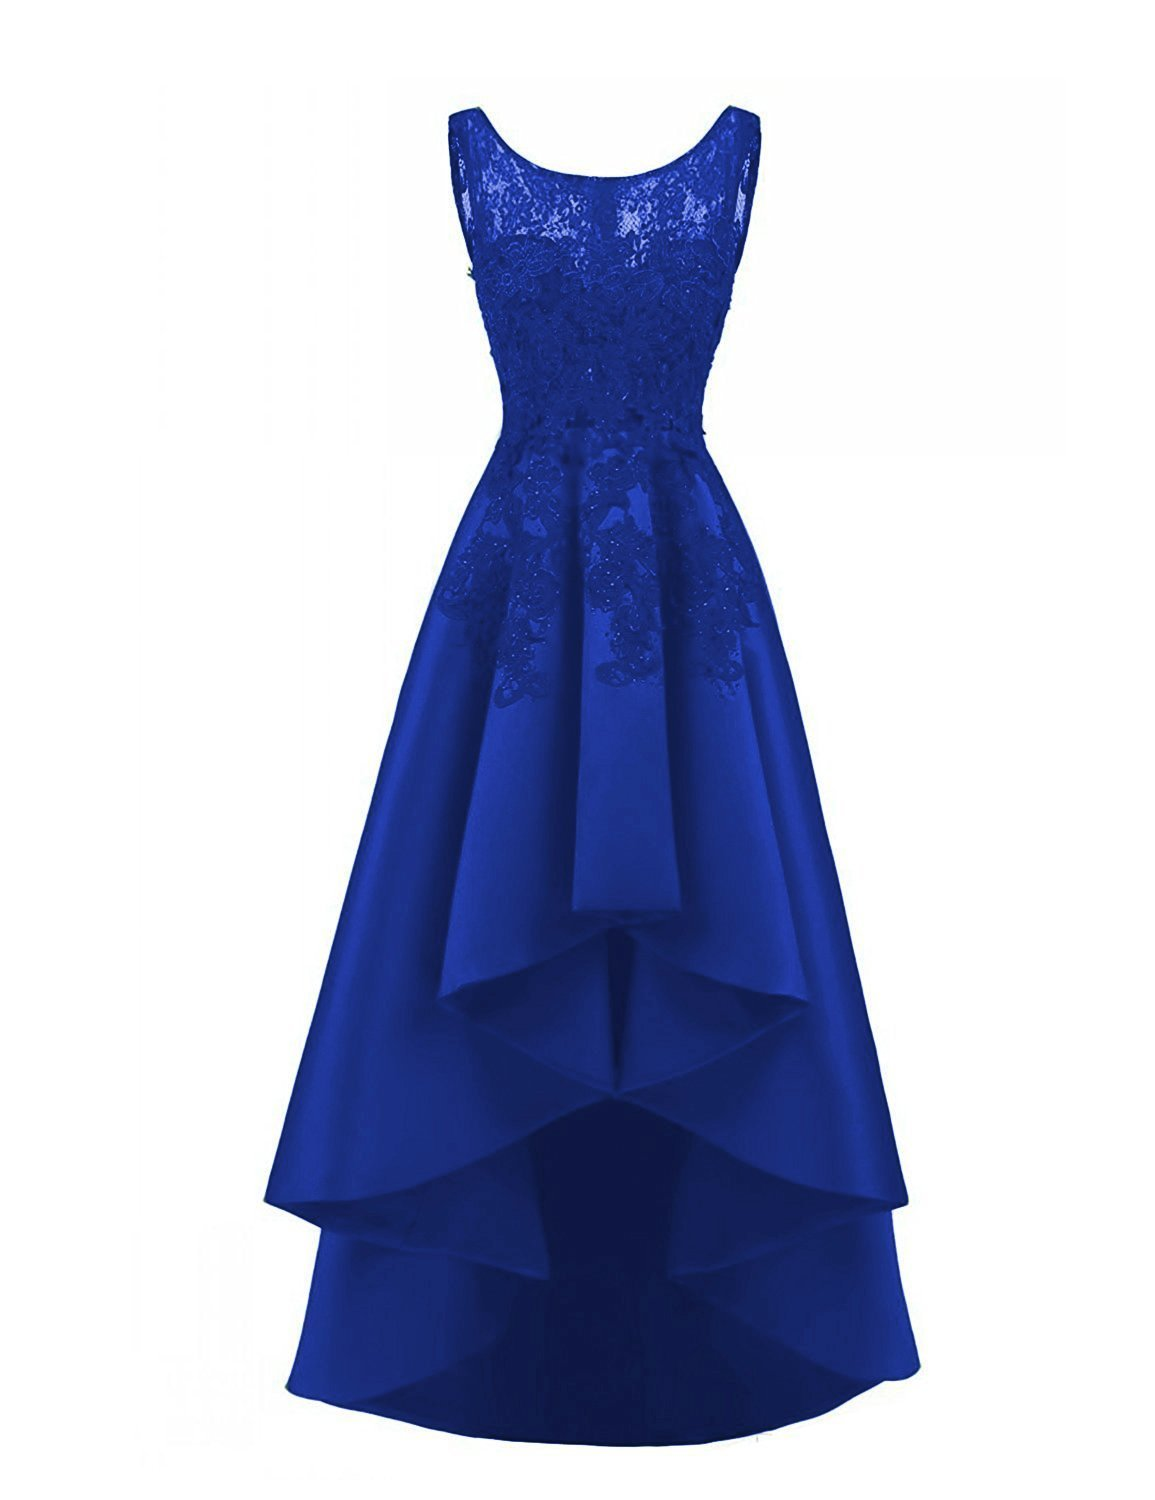 23f8bdabf1335 Home/Brands/DarlingU/Women's High Low Royal Blue Bridesmaid Dresses Lace  Applqiues Cocktail Party Gowns Size 18. ; 